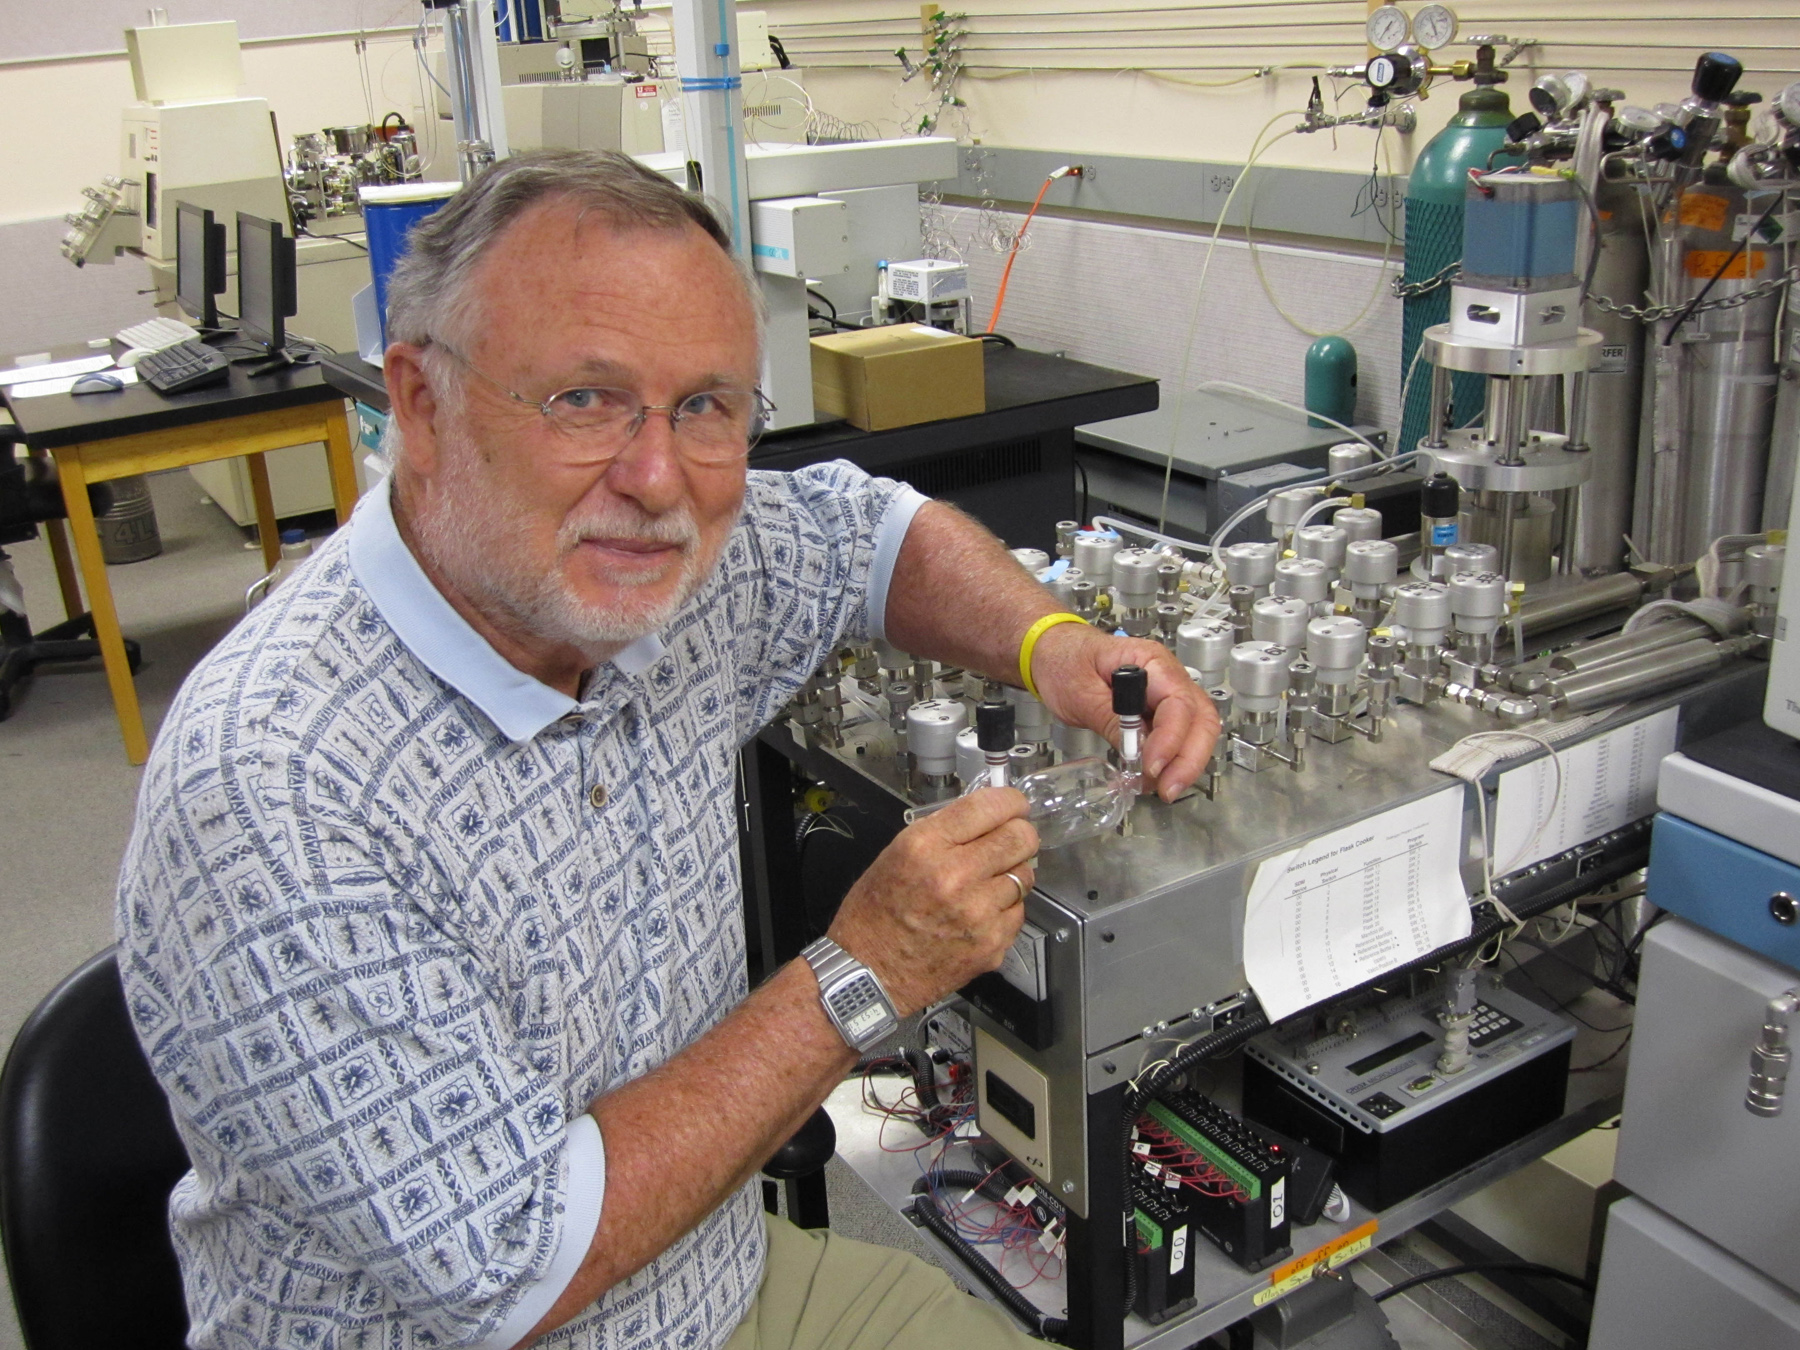 University of Utah biologist Jim Ehleringer and colleagues at Harvard developed a new method to estimate carbon dioxide emissions and thus verify compliance with a greenhouse gas treaty – if the nations of the world ever agree to limit emissions of the climate-warming gas.